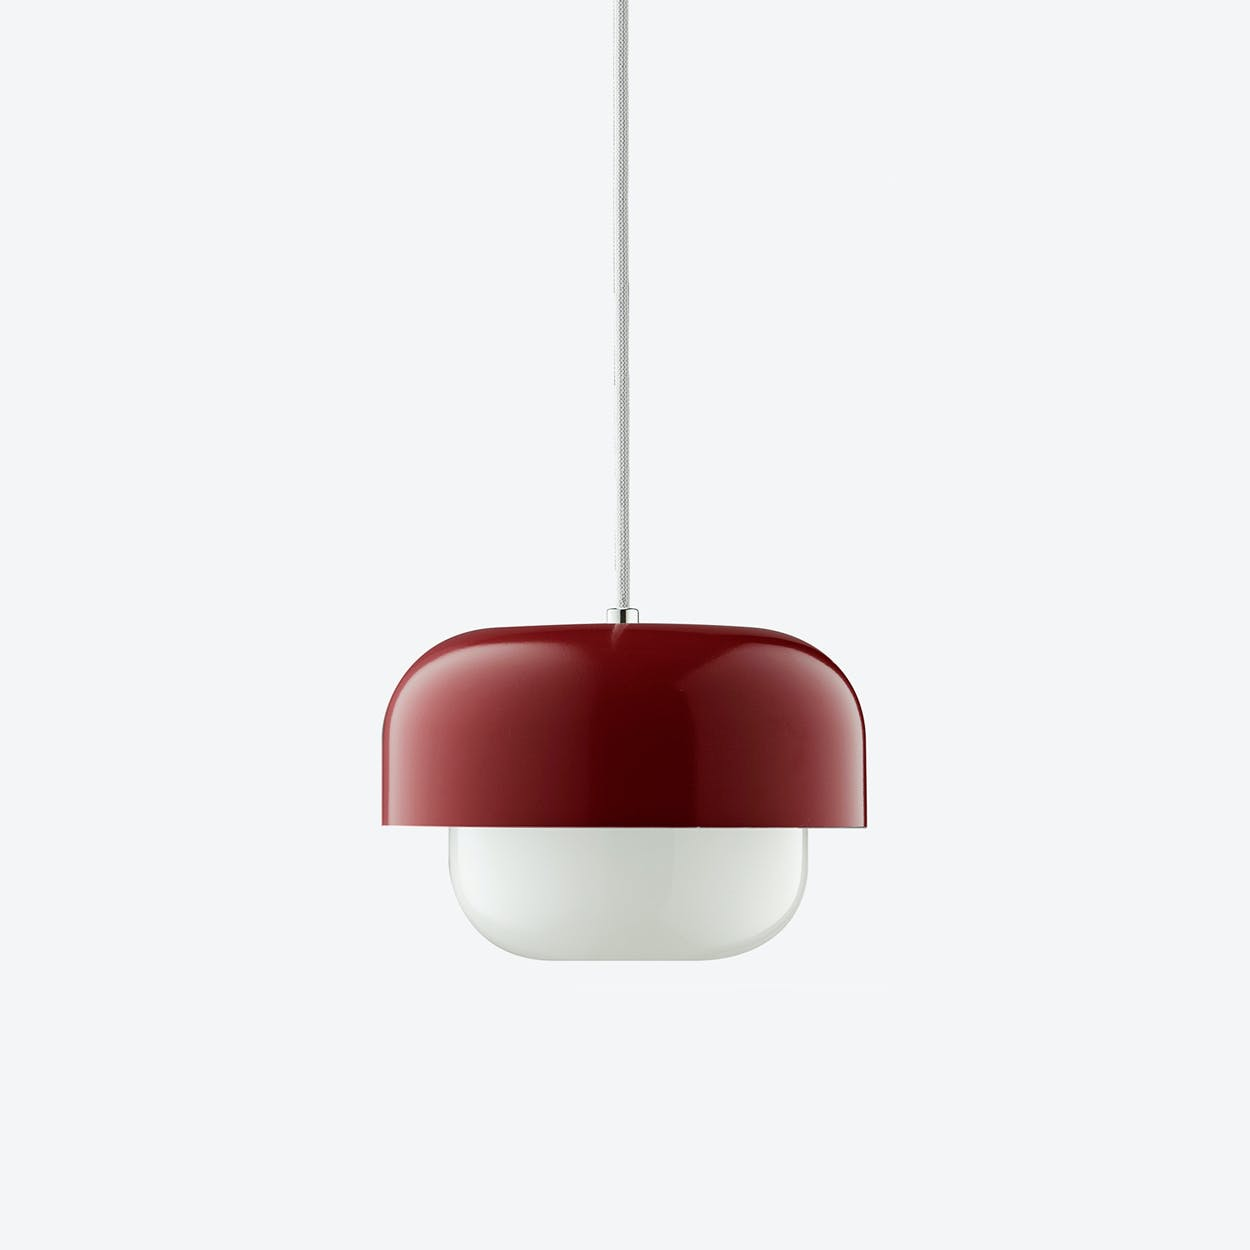 Haipot Pendant Lamp in Red Dusty Earth